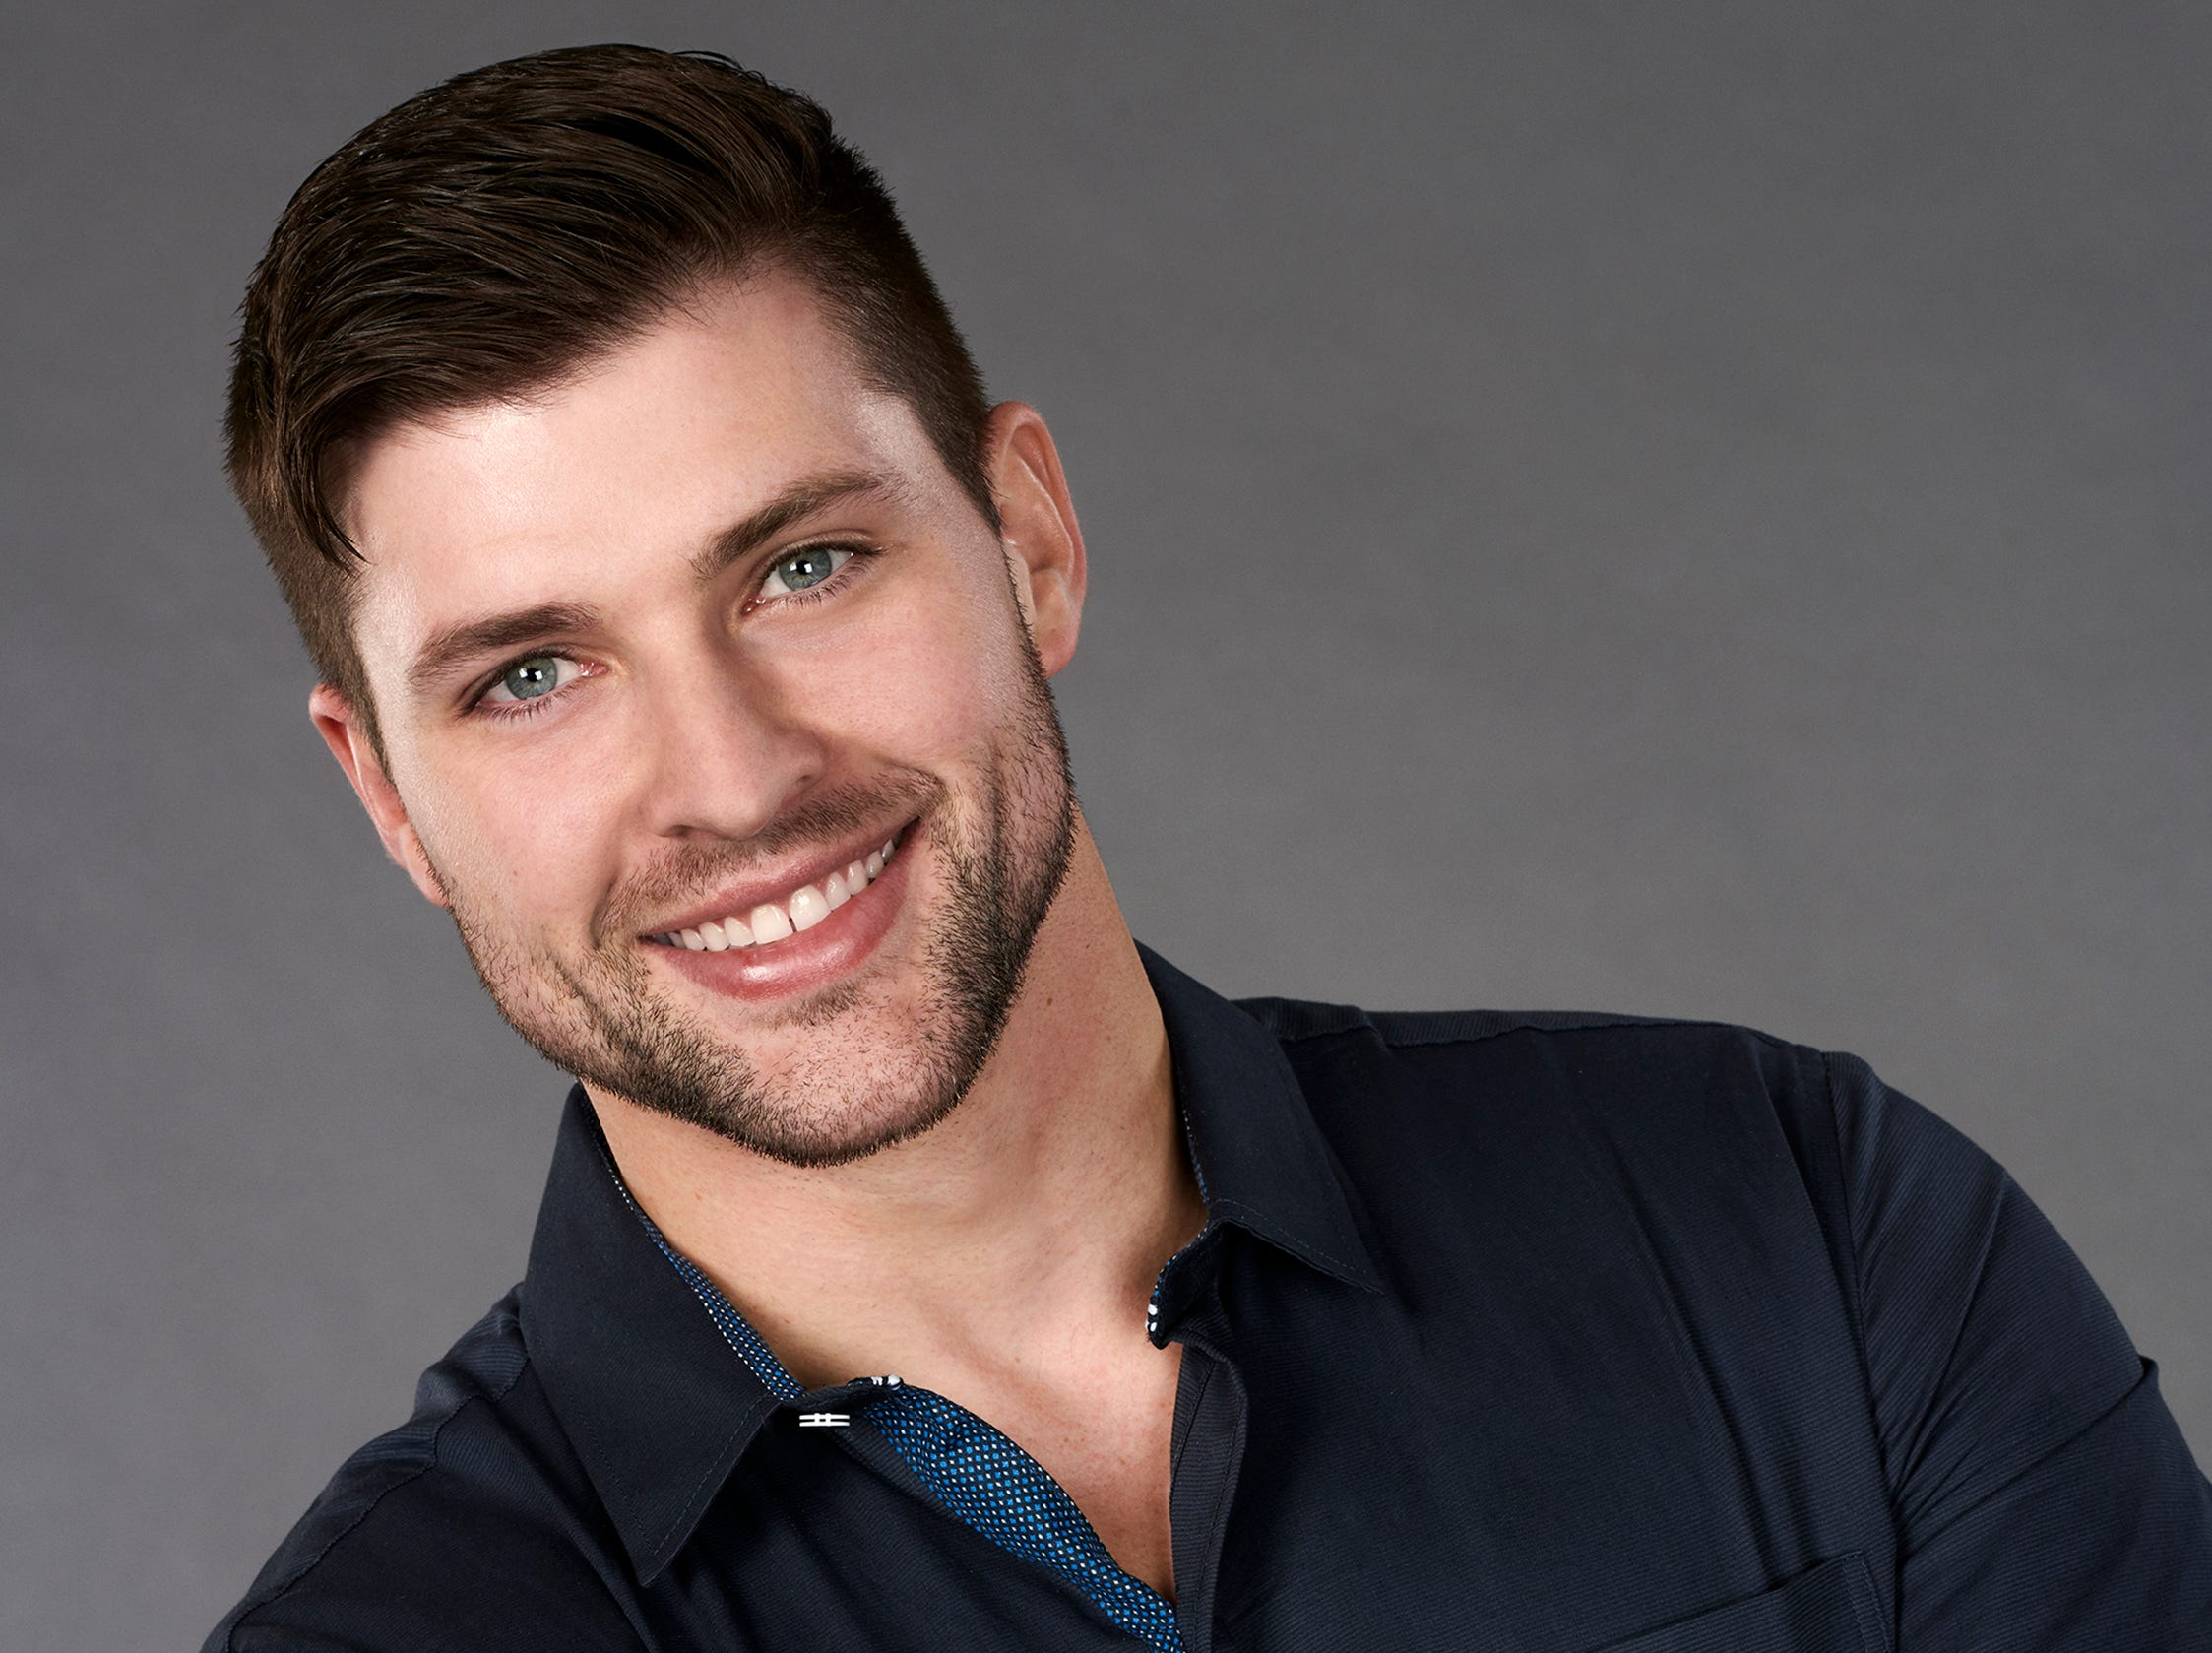 """The Bachelorette"" Season 23 contestant: Kevin, 27, Manteno, Illinois, behavioral health specialist"